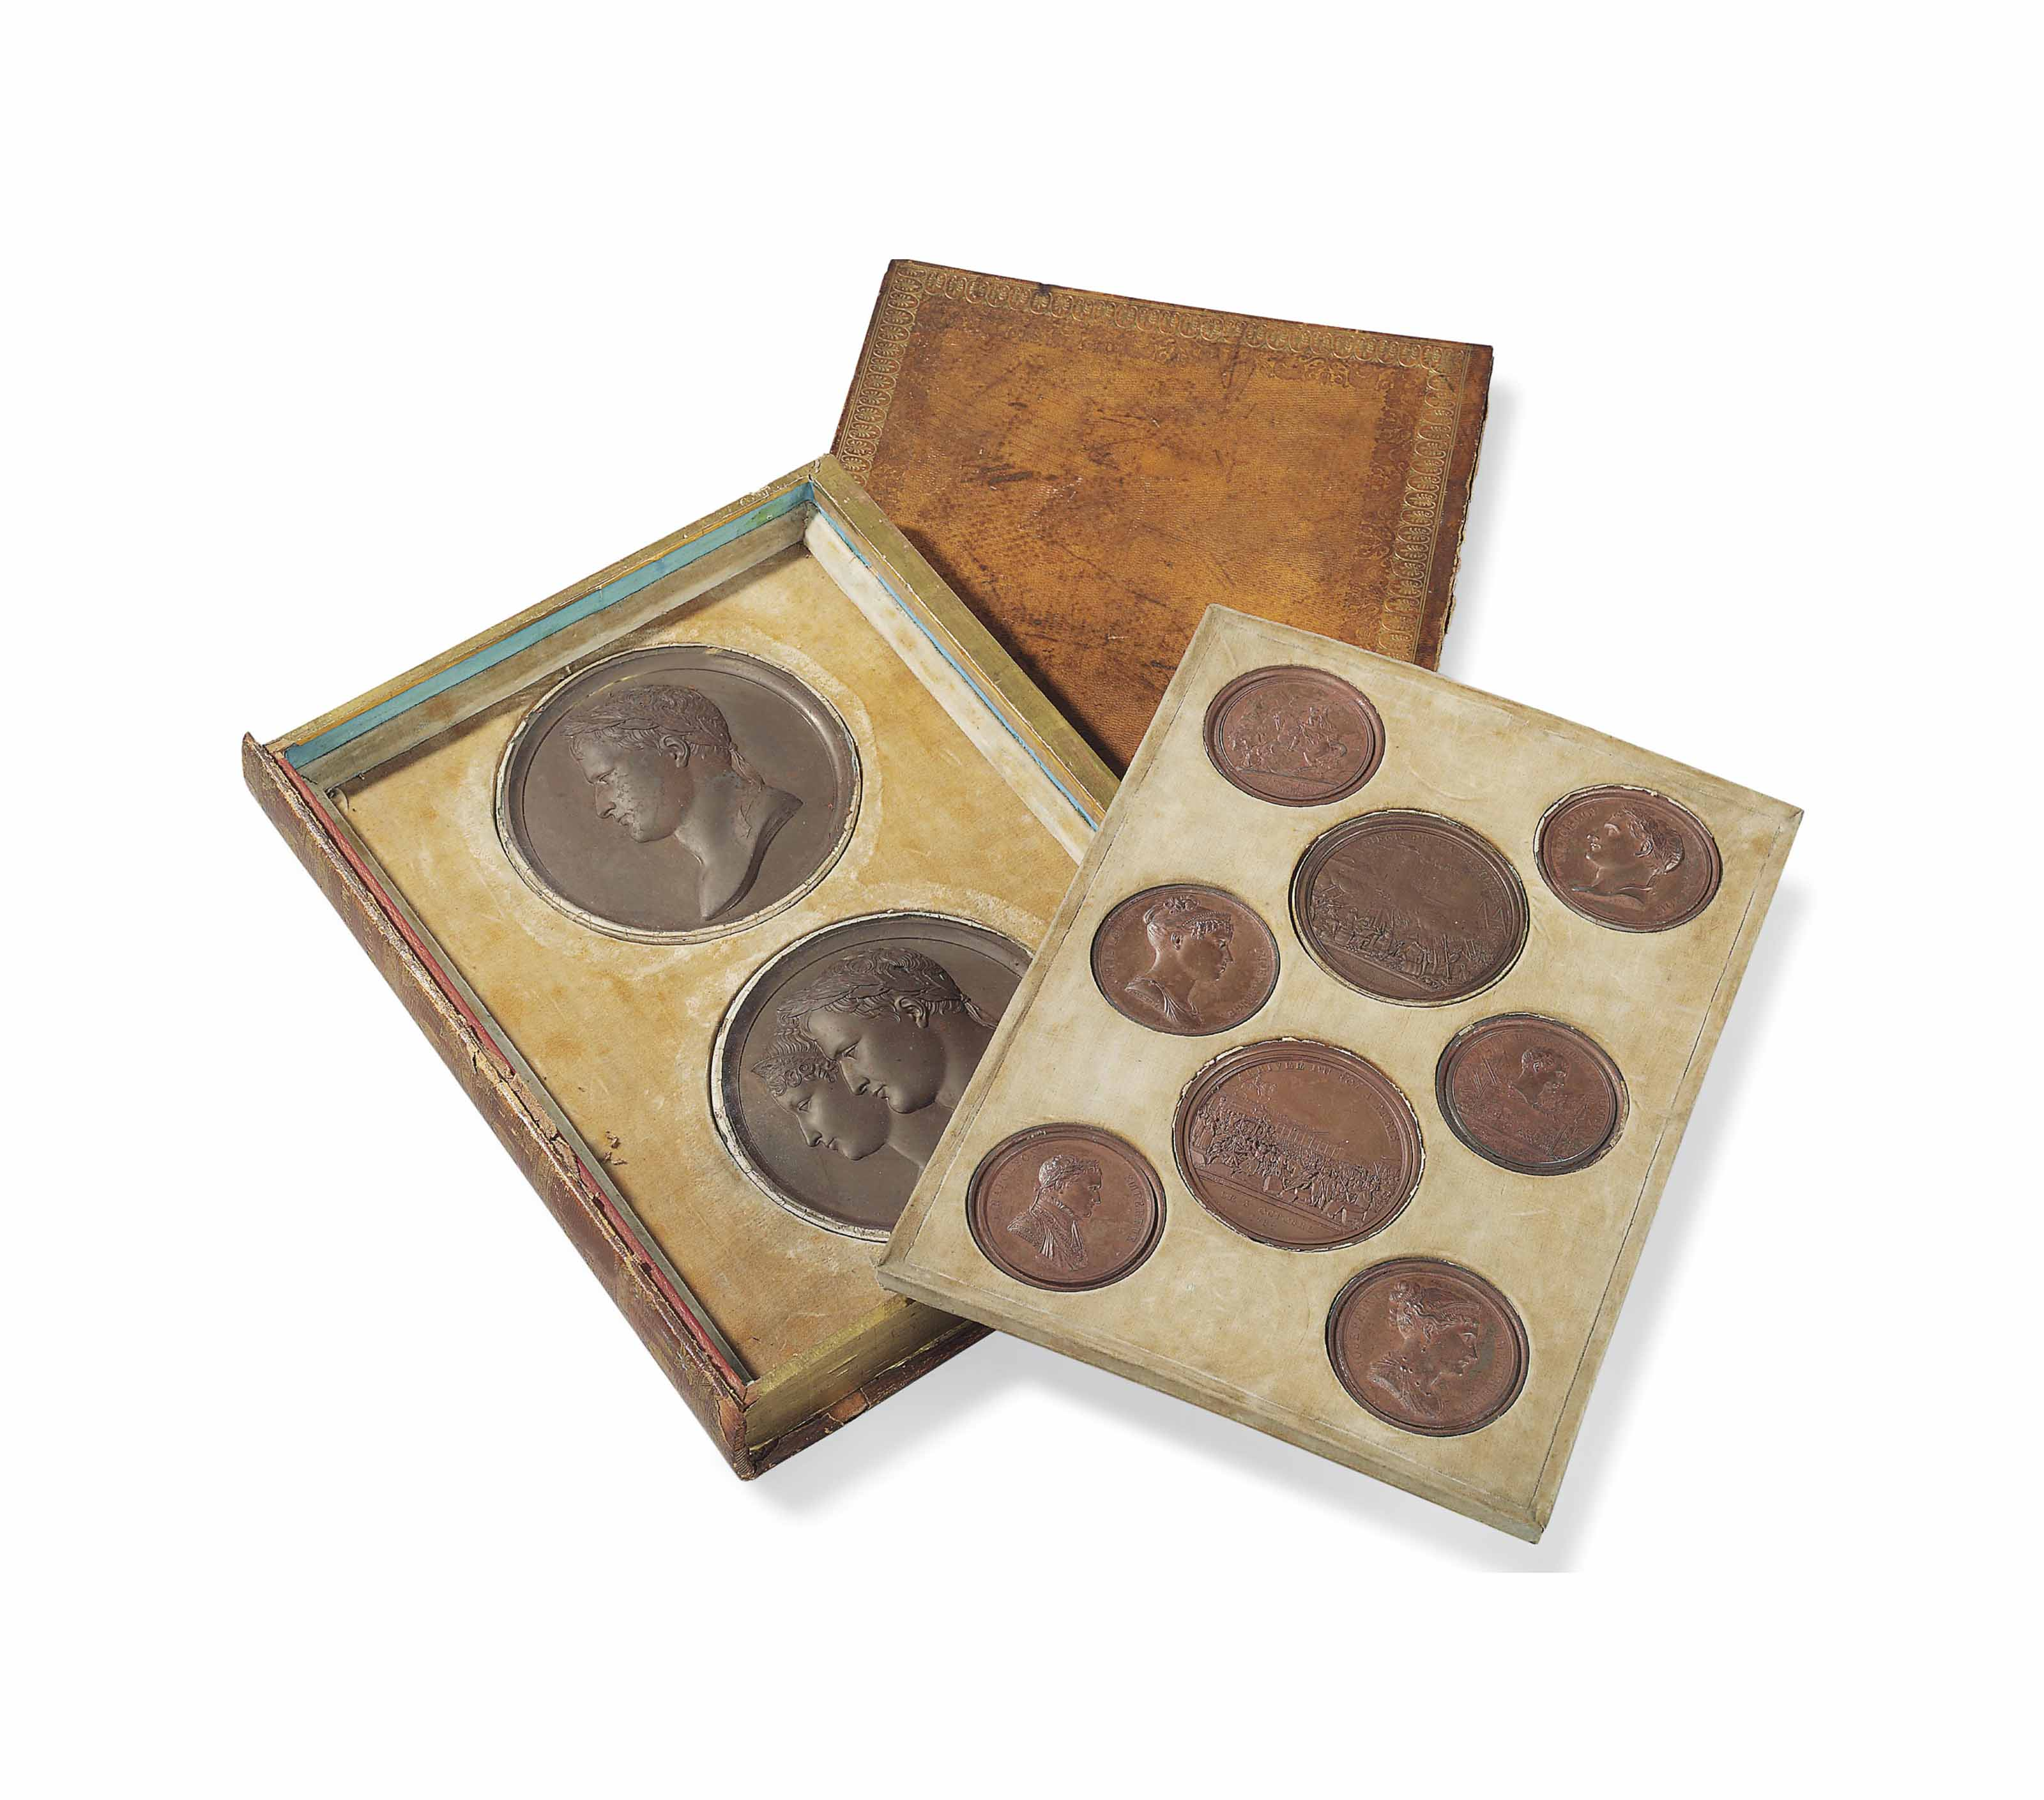 A CASED SET OF TEN CIRCULAR PATINATED LEAD 'NAPOLEON MEDALS'